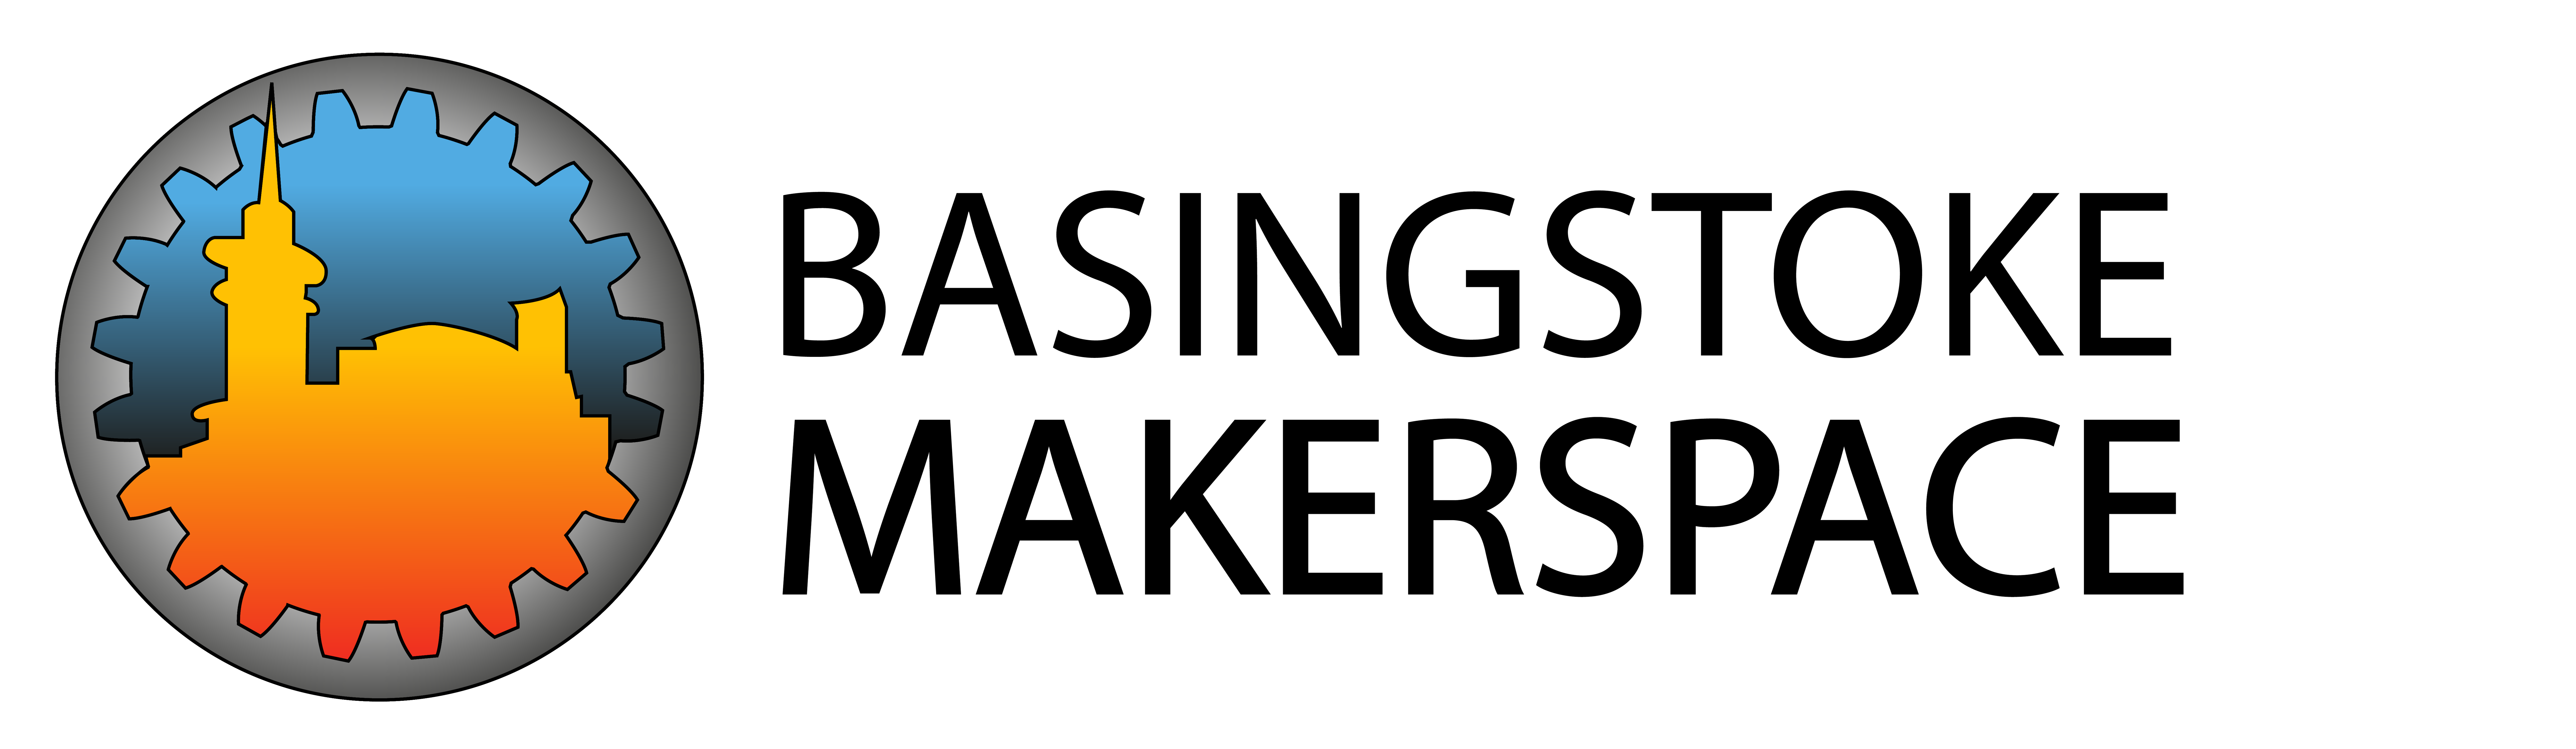 Basingstoke Makerspace